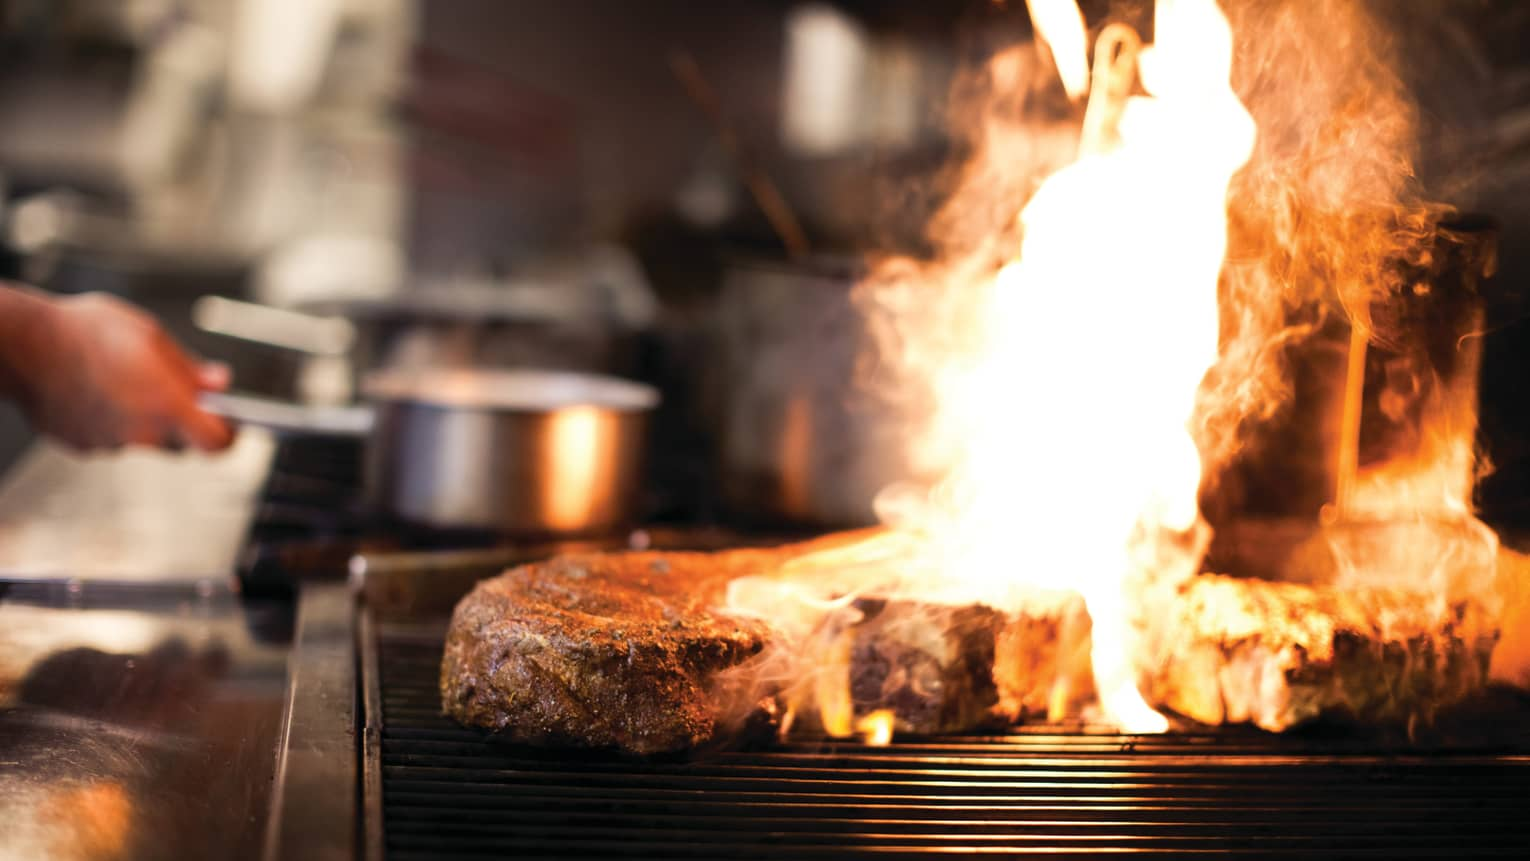 Orange flames shoot up from grill over large steak in Sidecut kitchen